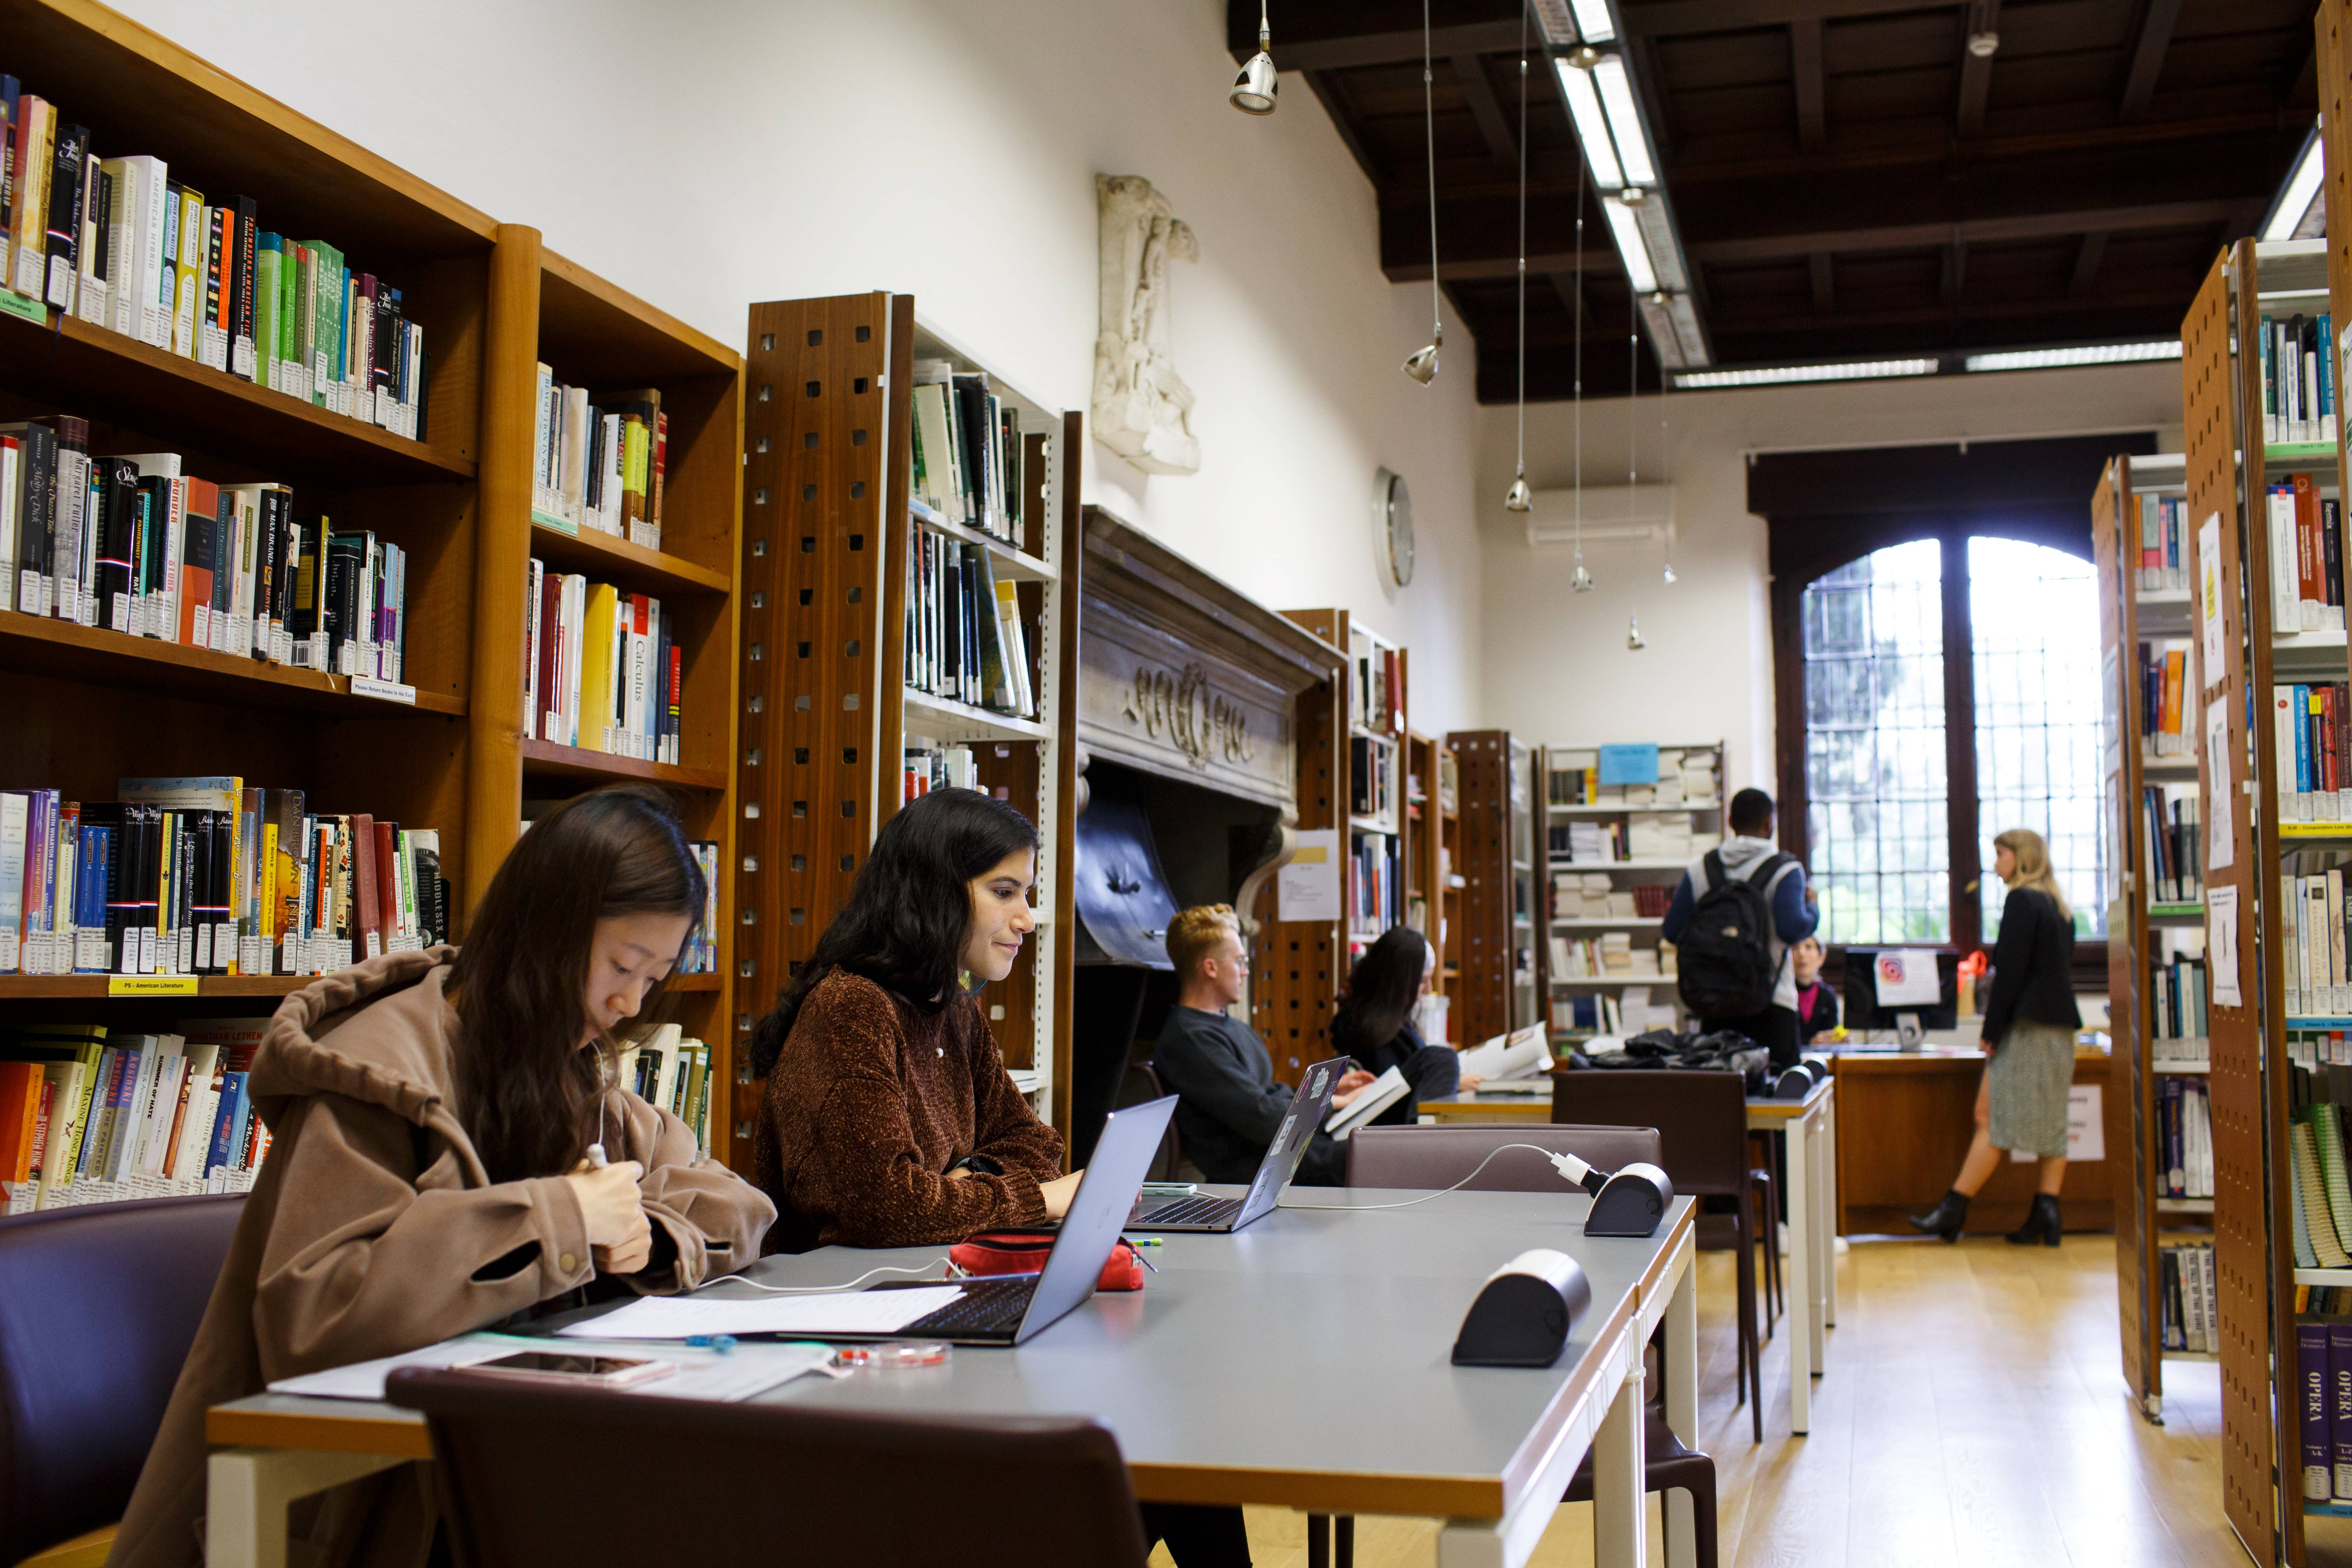 Students seated at desks in the library, reading books and working on their computer.